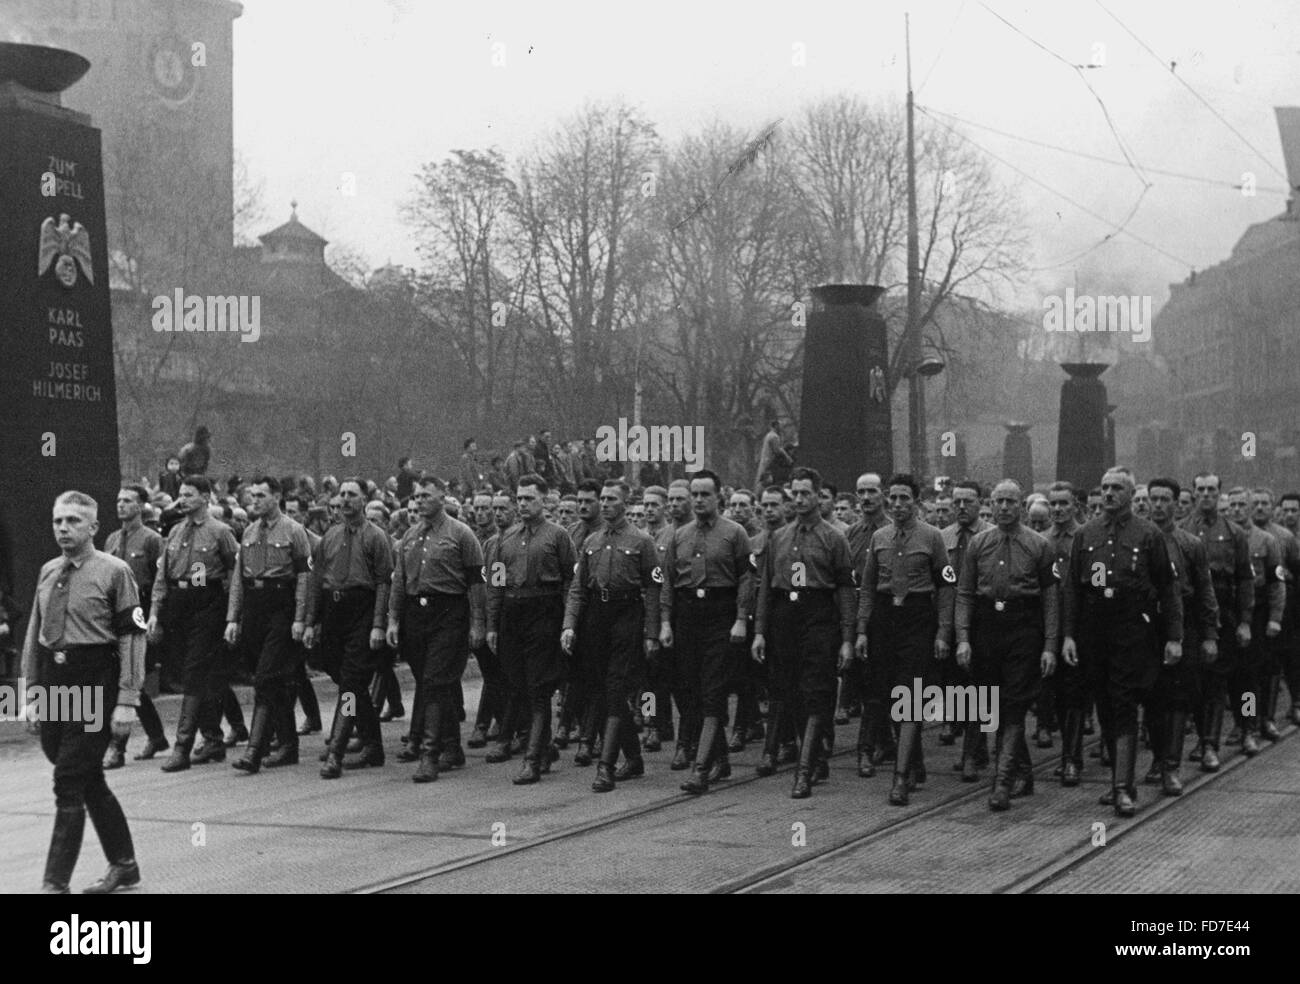 The annual commemorative march on 09 November, 1938 - Stock Image